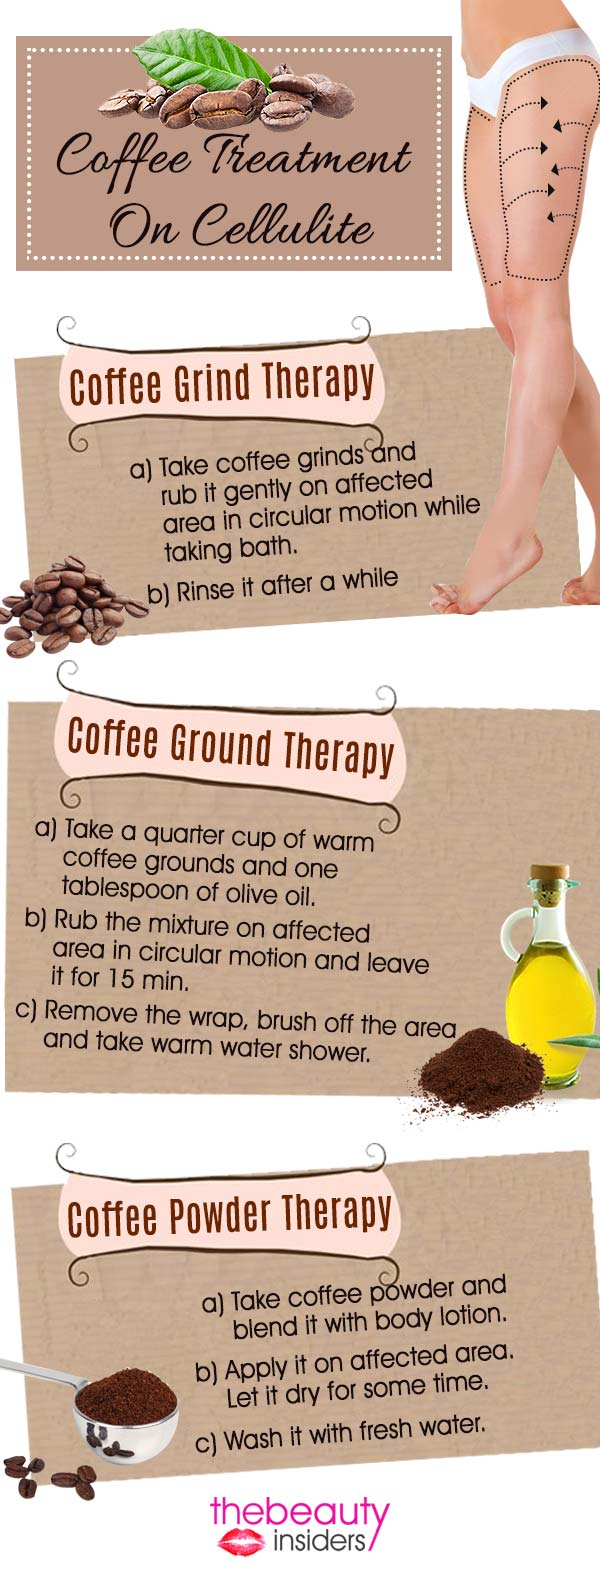 Coffee Treatment On Cellulite